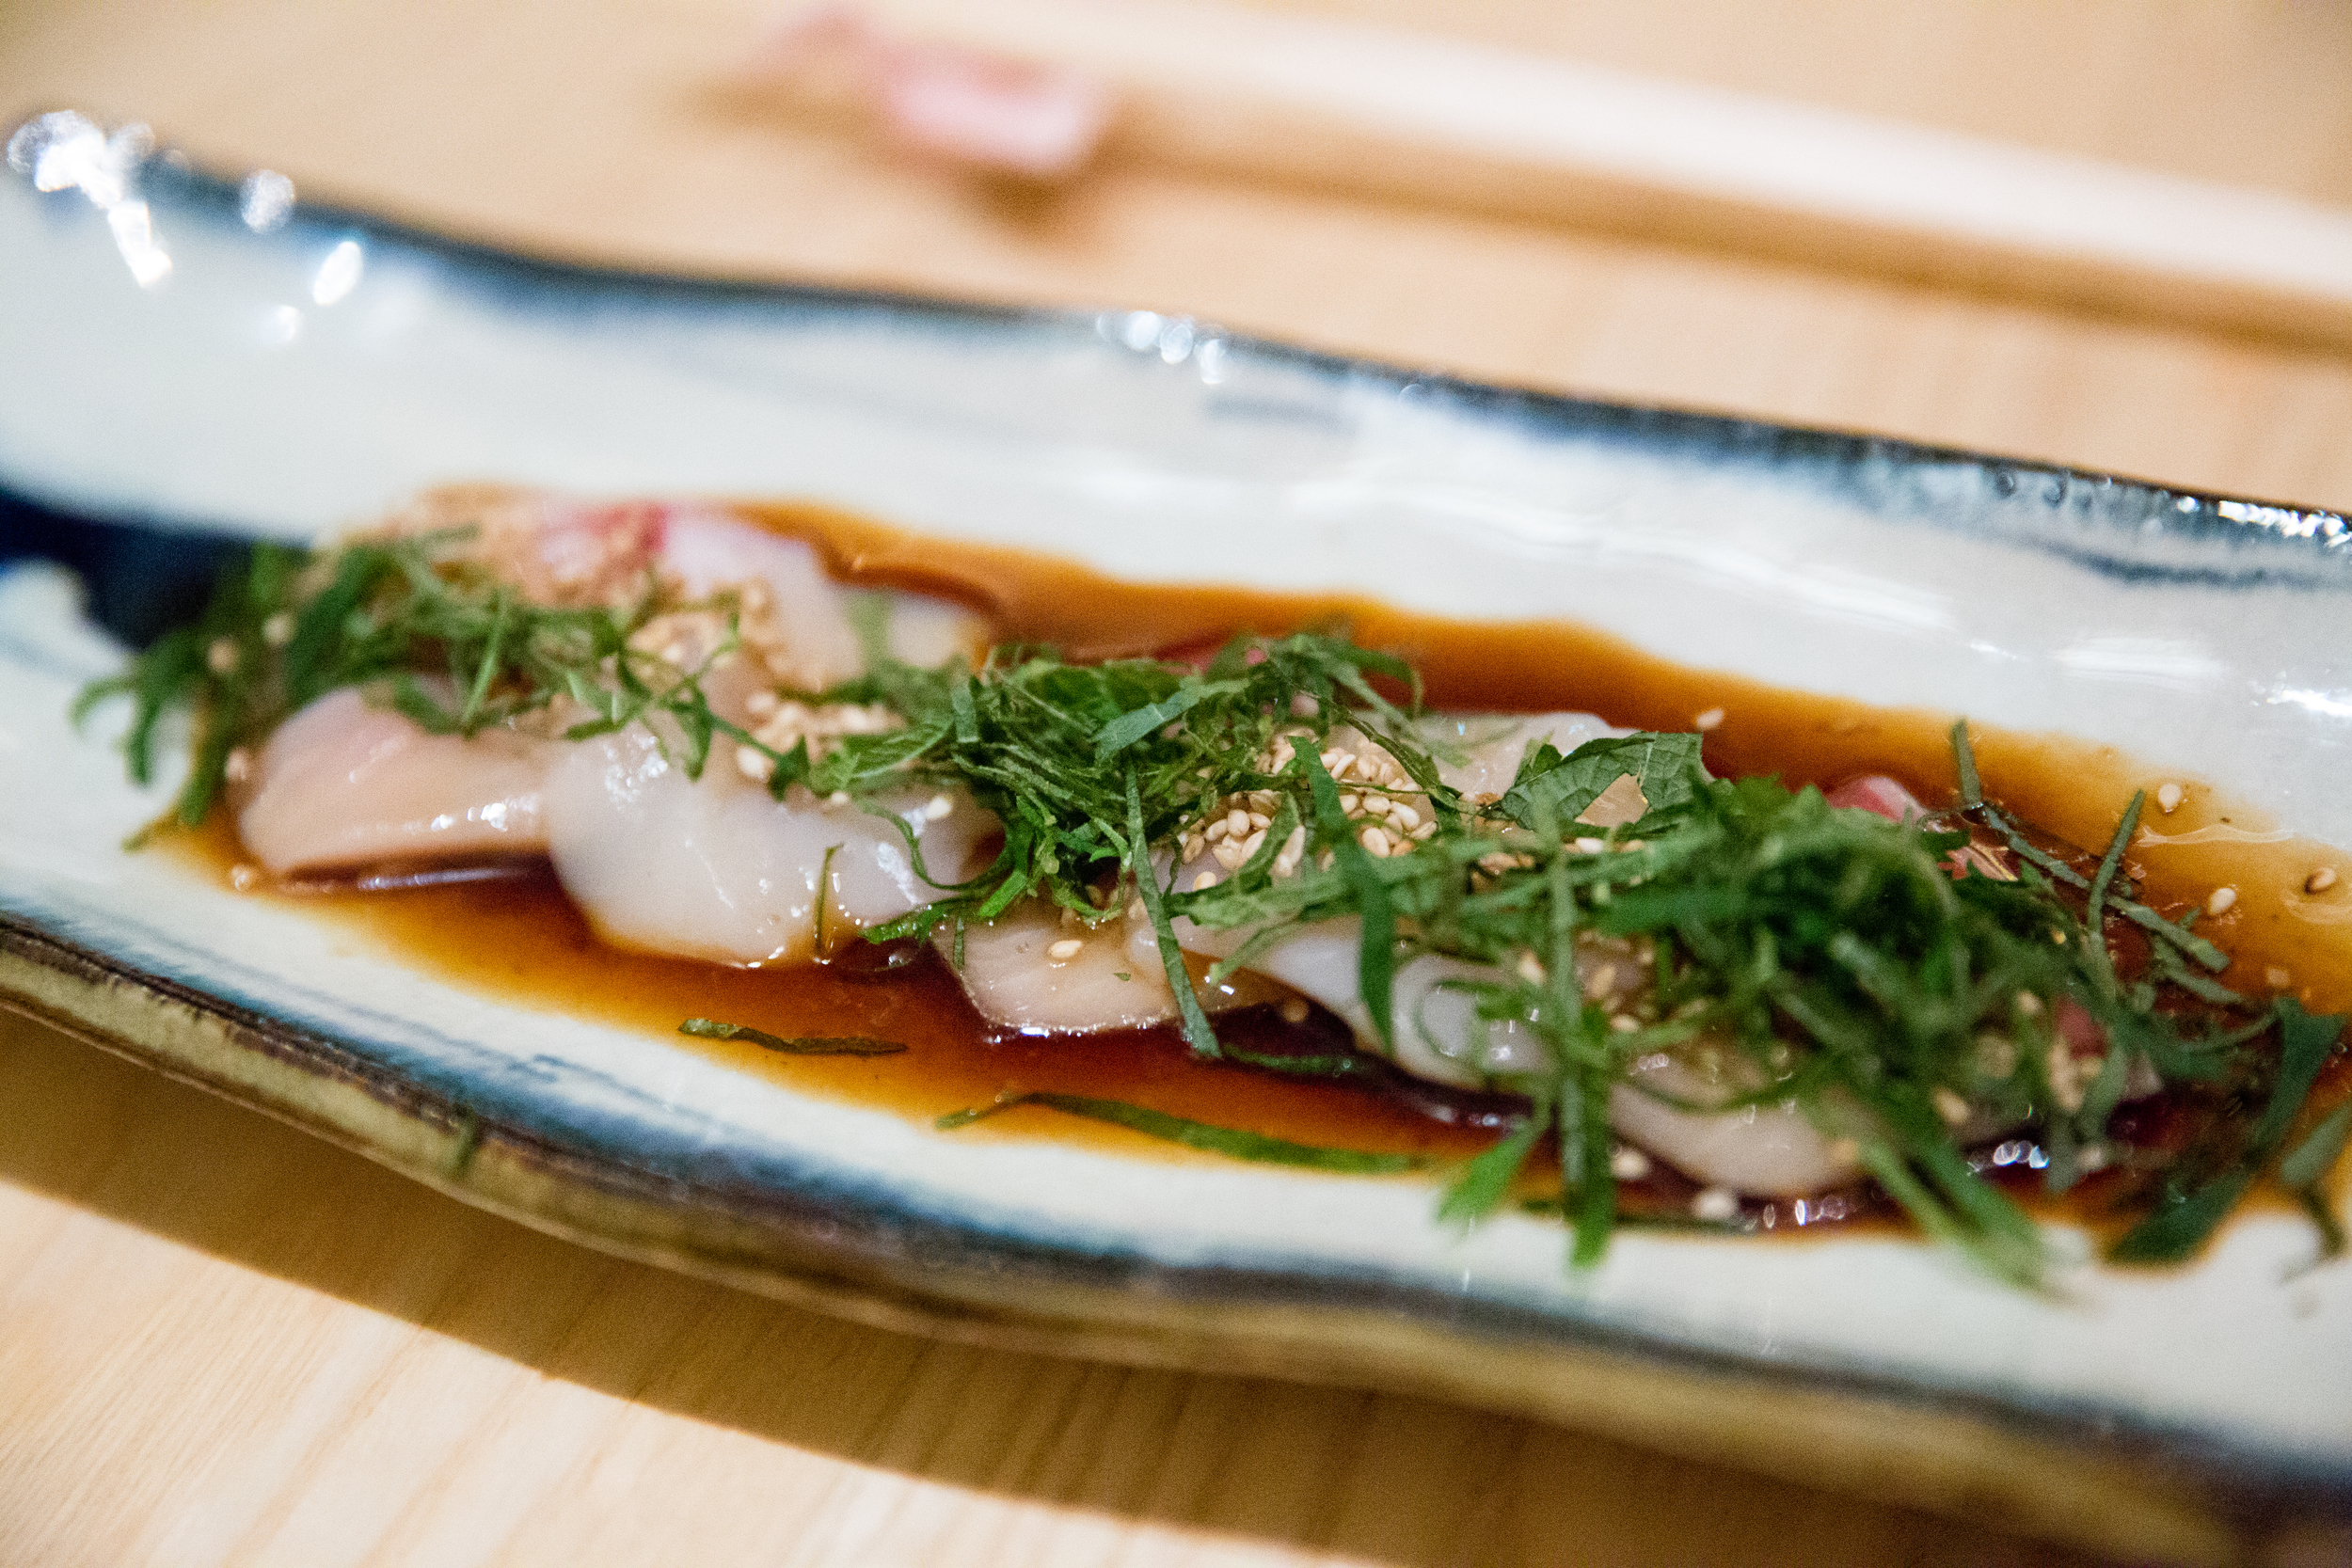 Hotate & Yellow Tail Japanese C  arpaccio S  tyle